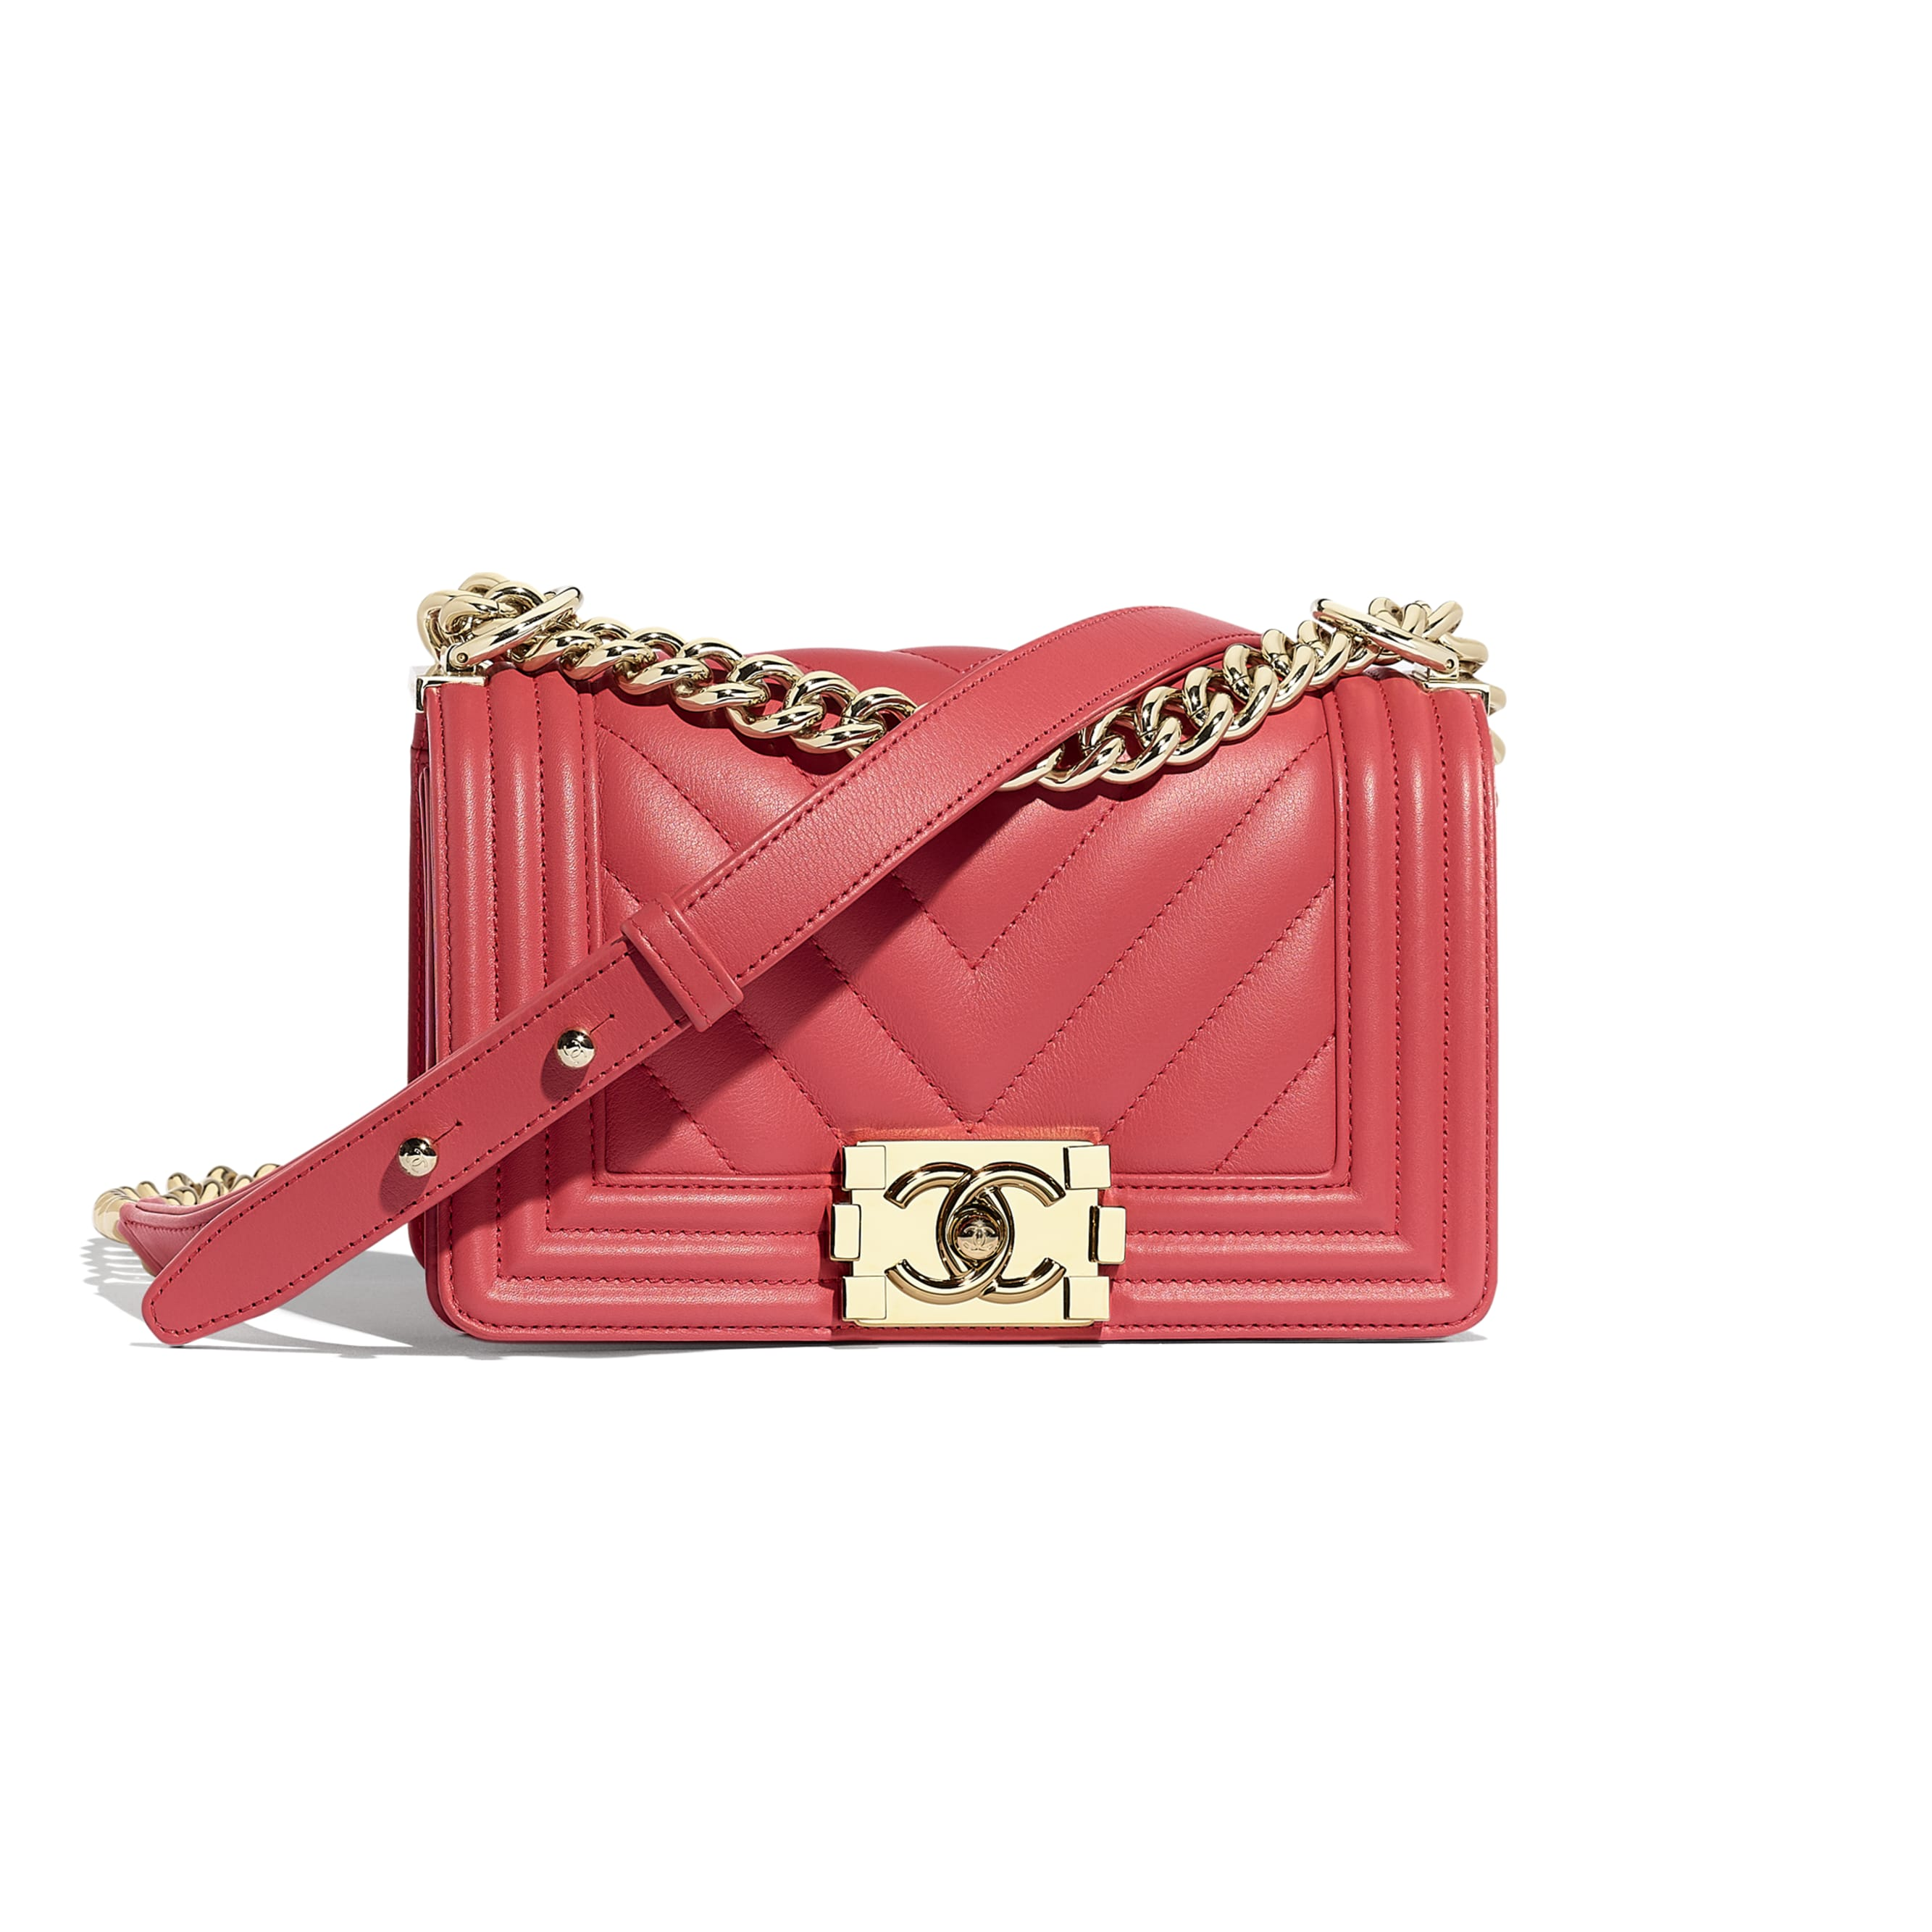 Small BOY CHANEL Handbag - Pink - Calfskin & Gold-Tone Metal - CHANEL - Default view - see standard sized version